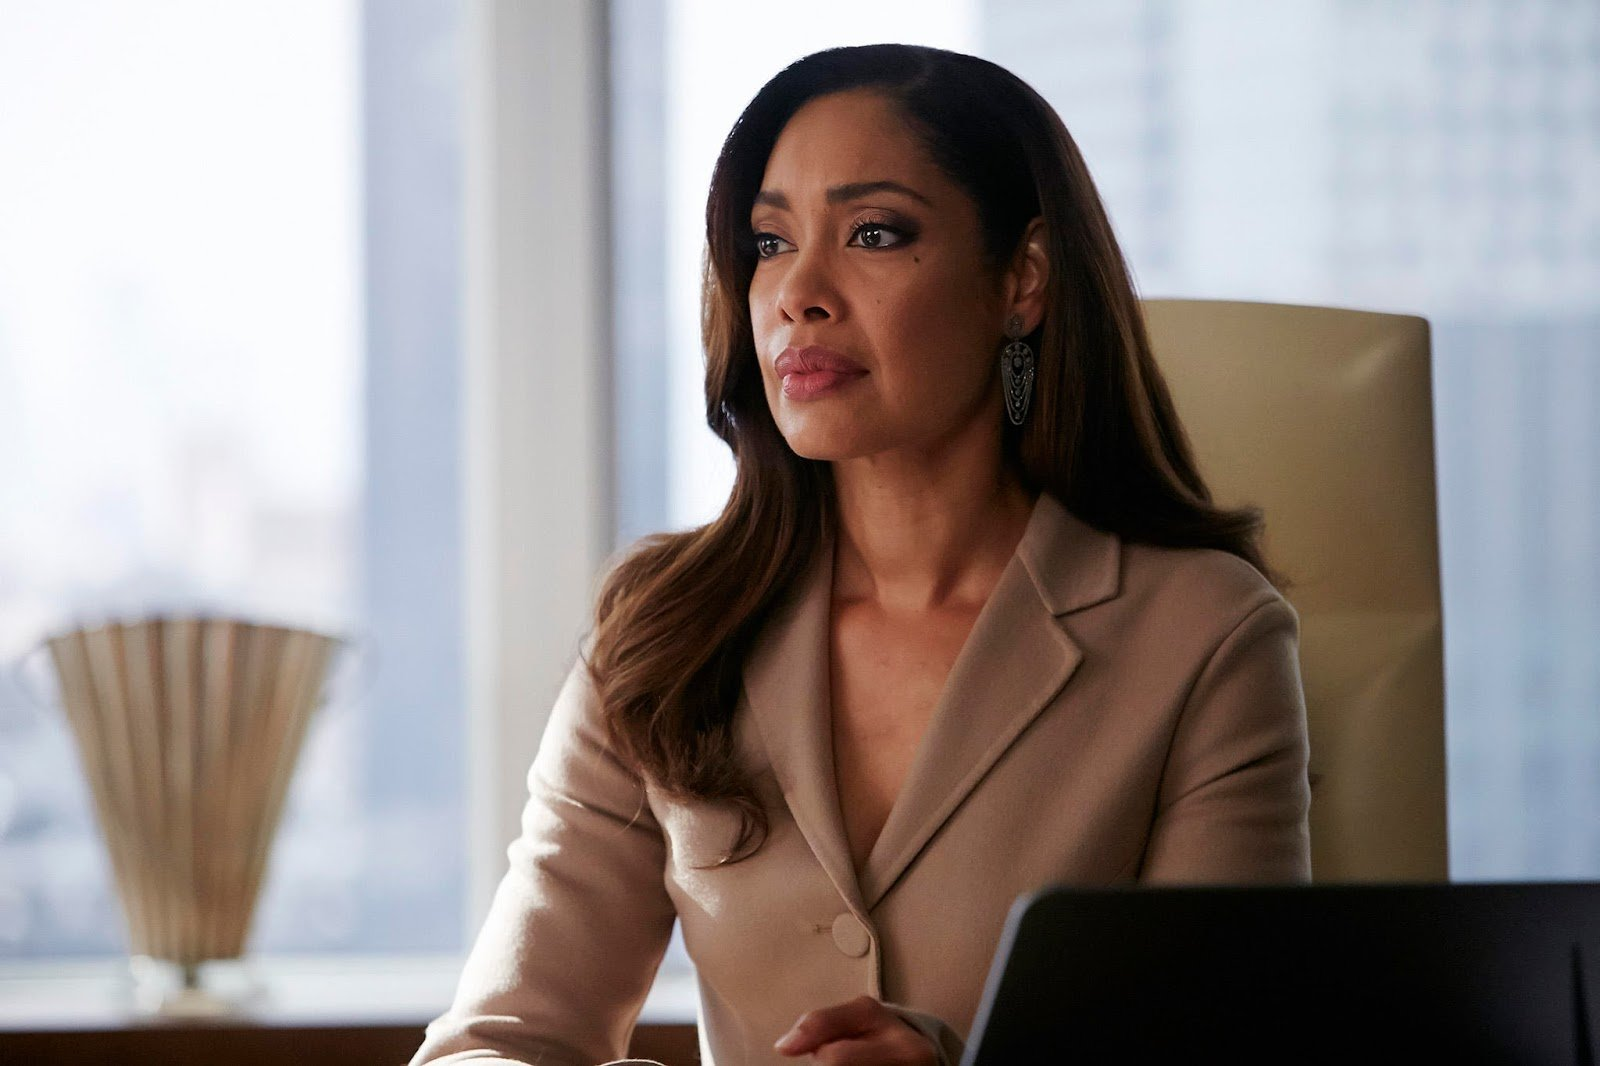 Season 7 Finale of 'Suits' to Introduce New Spinoff Series Starring Gina Torres